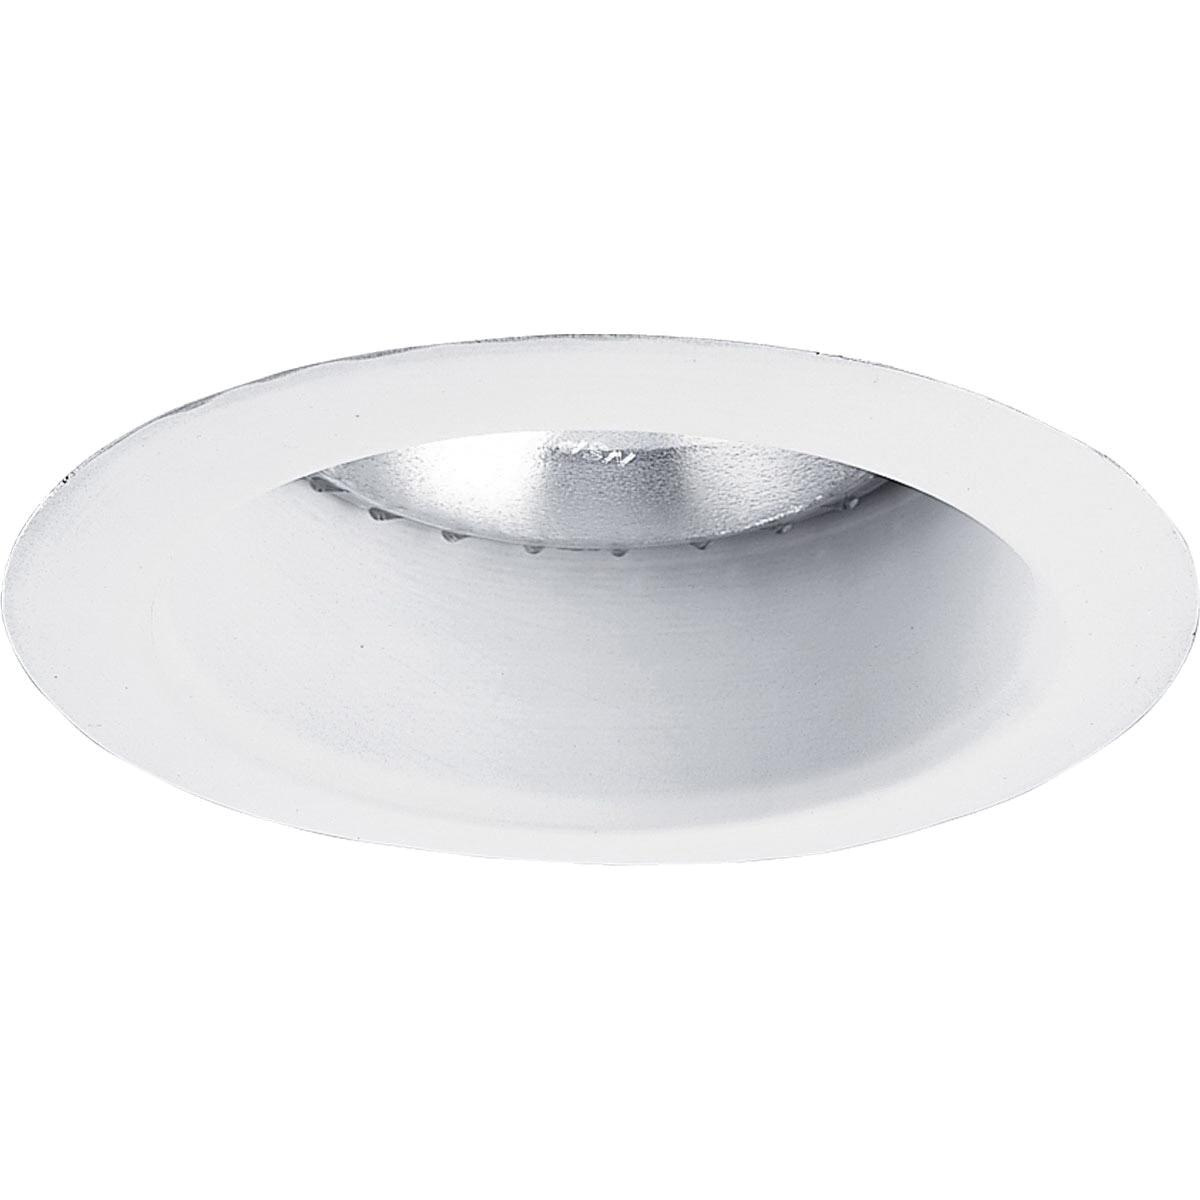 Progress Lighting P8368 28 Ic Non 5 Inch Open Recessed Shallow Reflector Trim Round 1 Light White